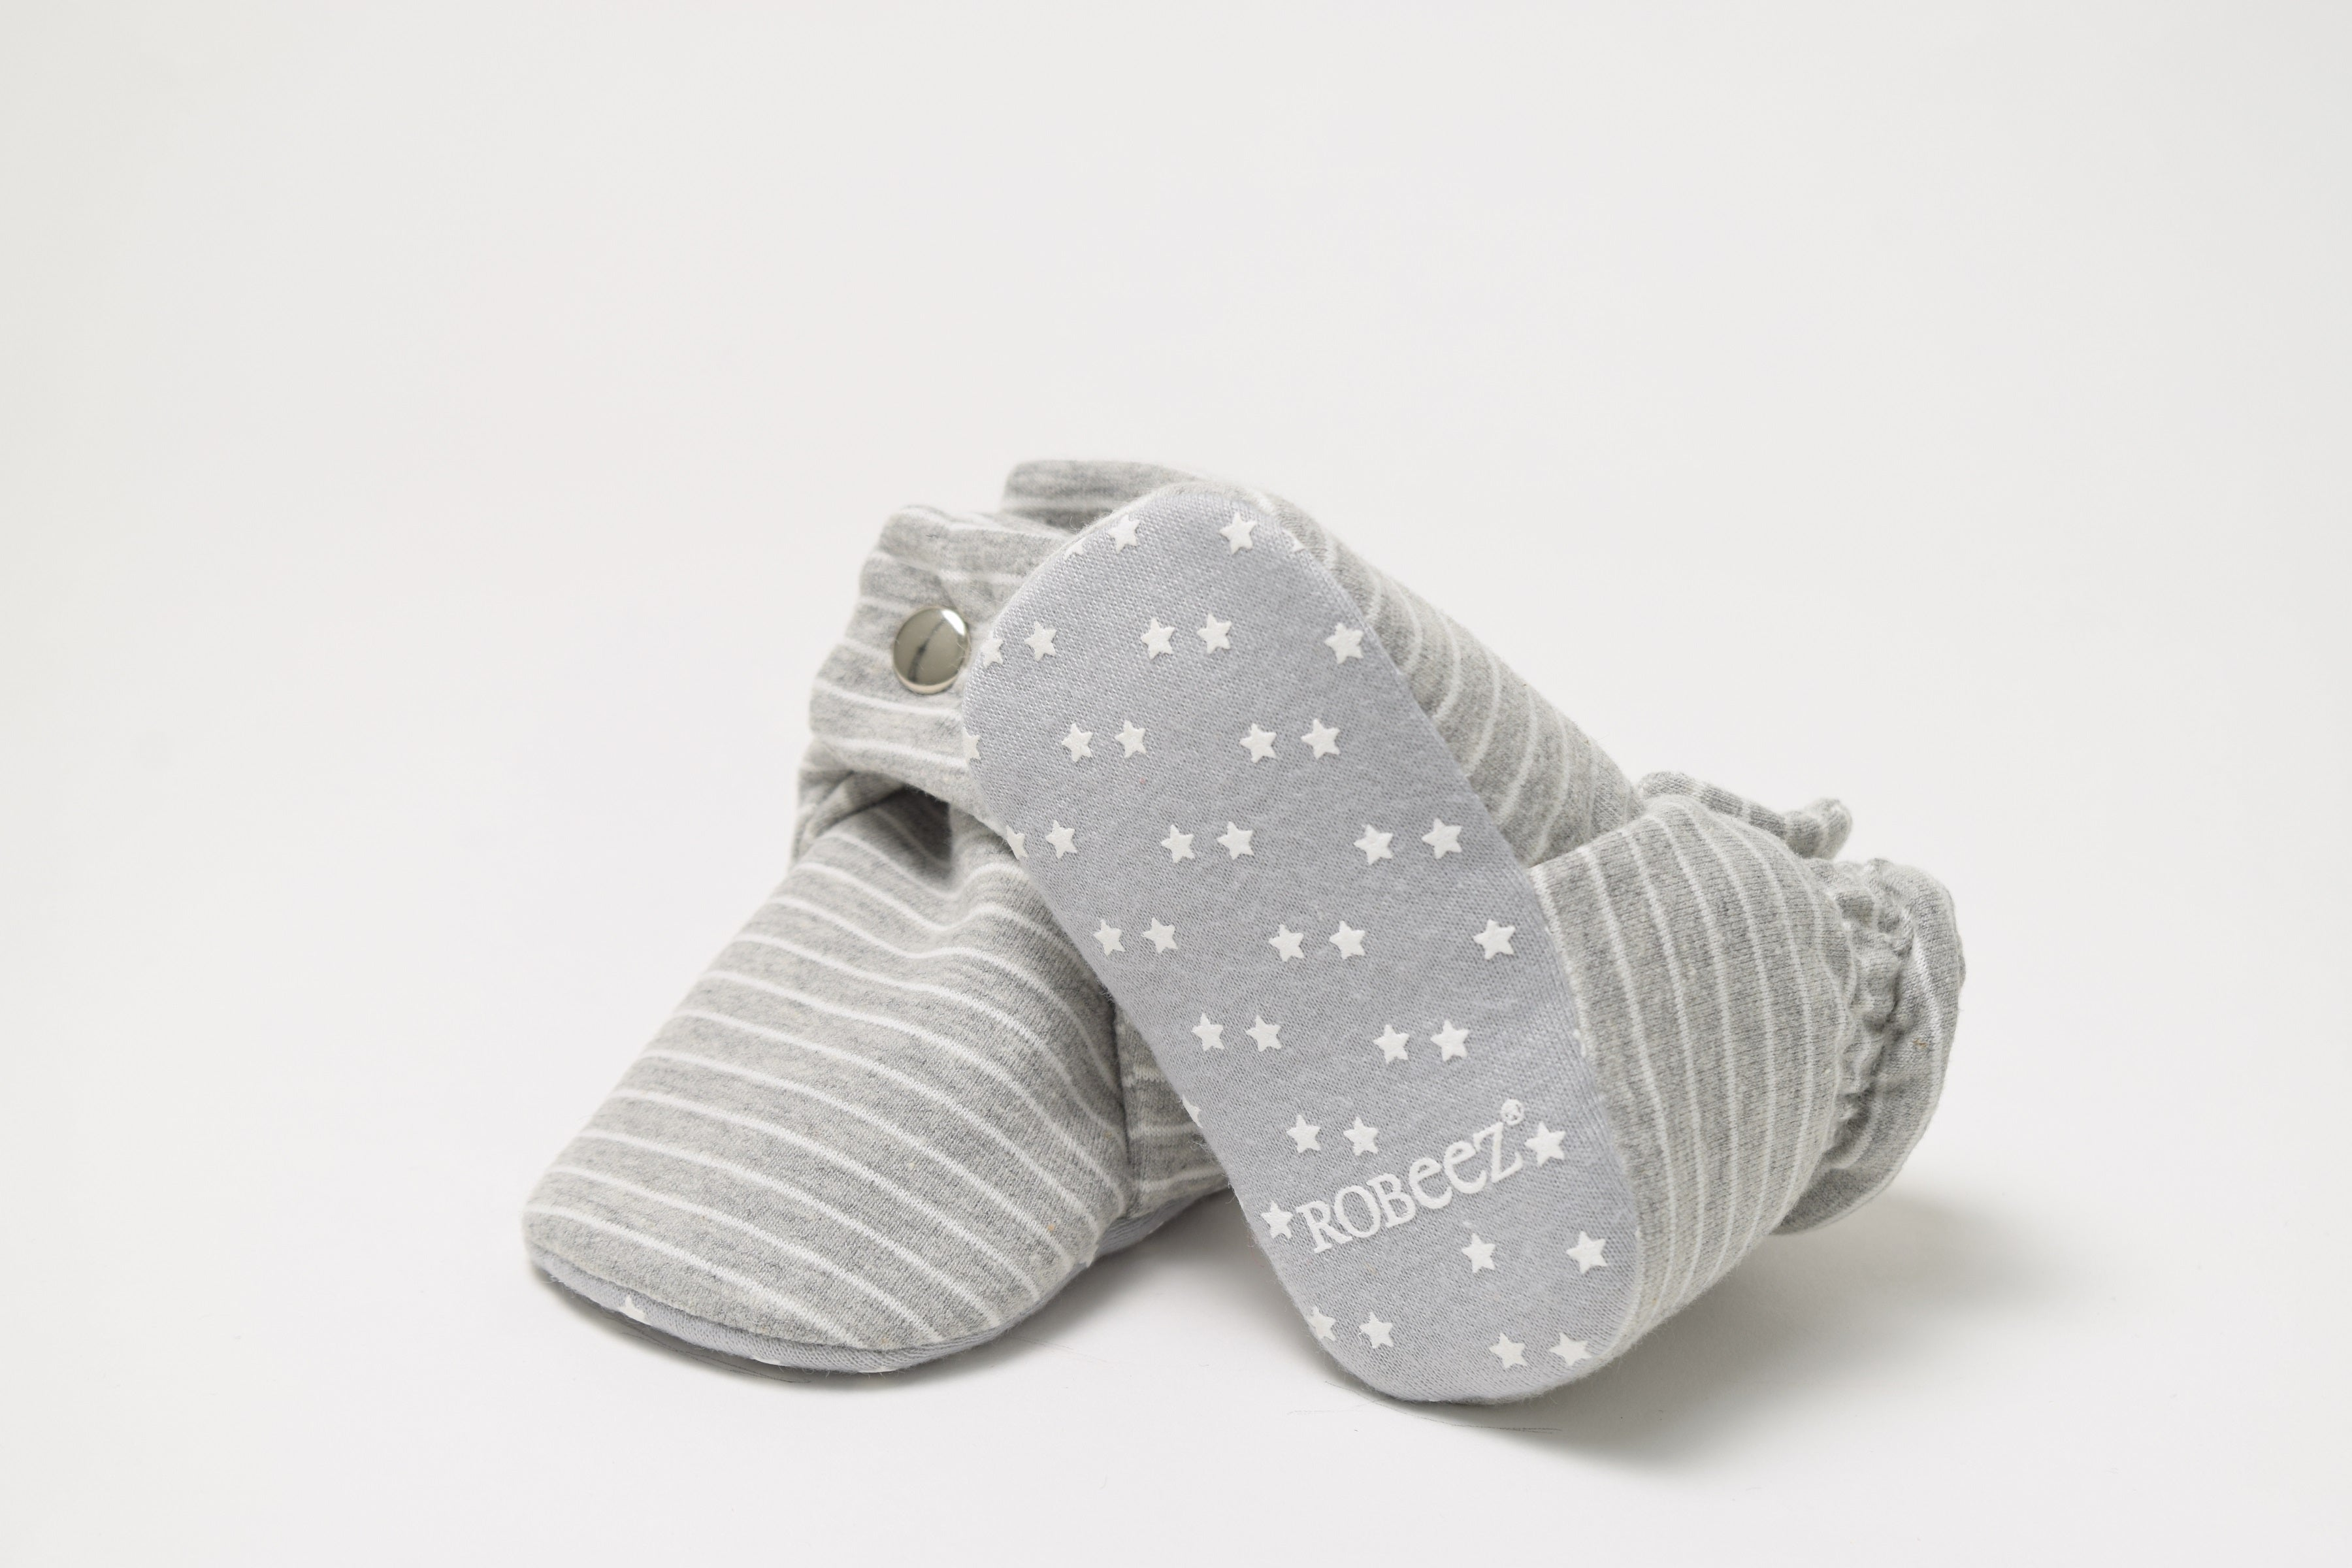 Snap Booties - Grey with White Stripes